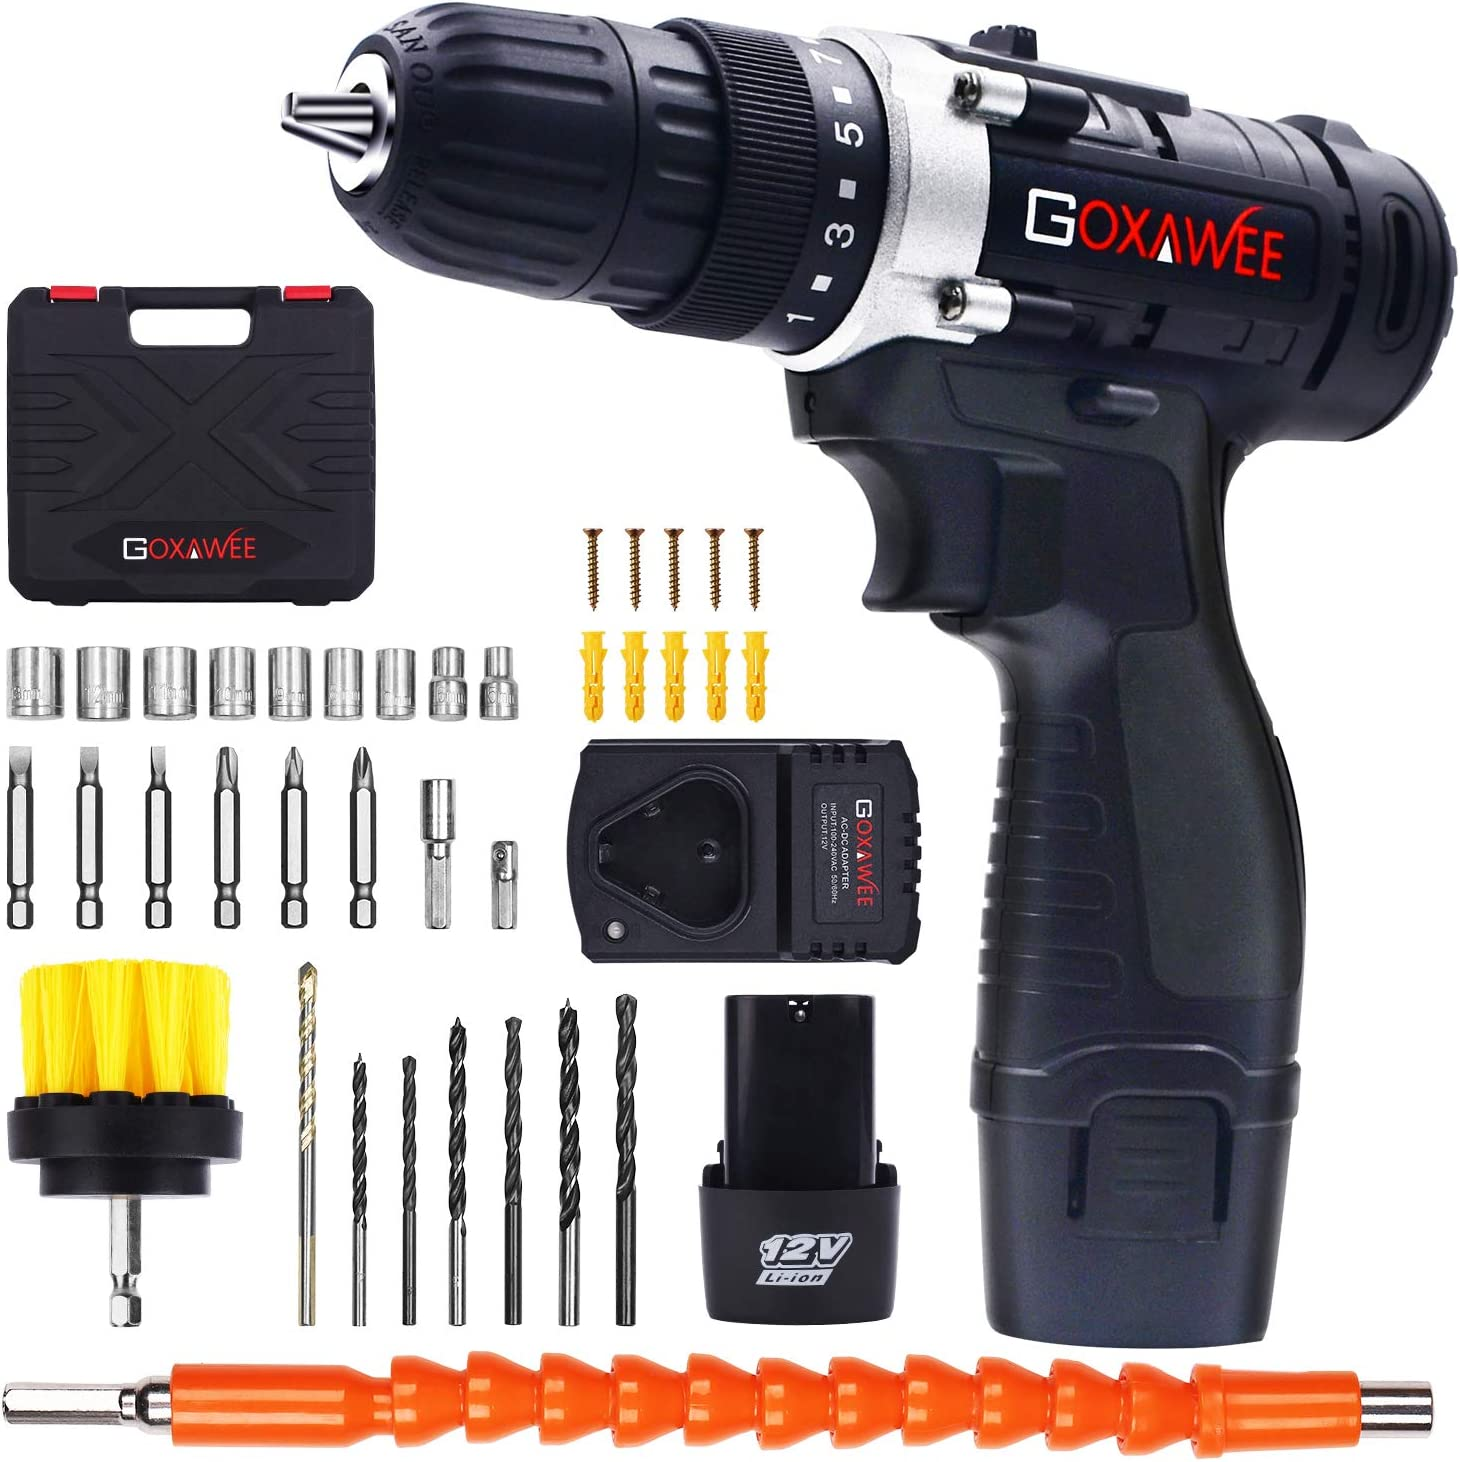 Free Amazon Promo Code 2020 for Cordless Drill with 2 Batteries